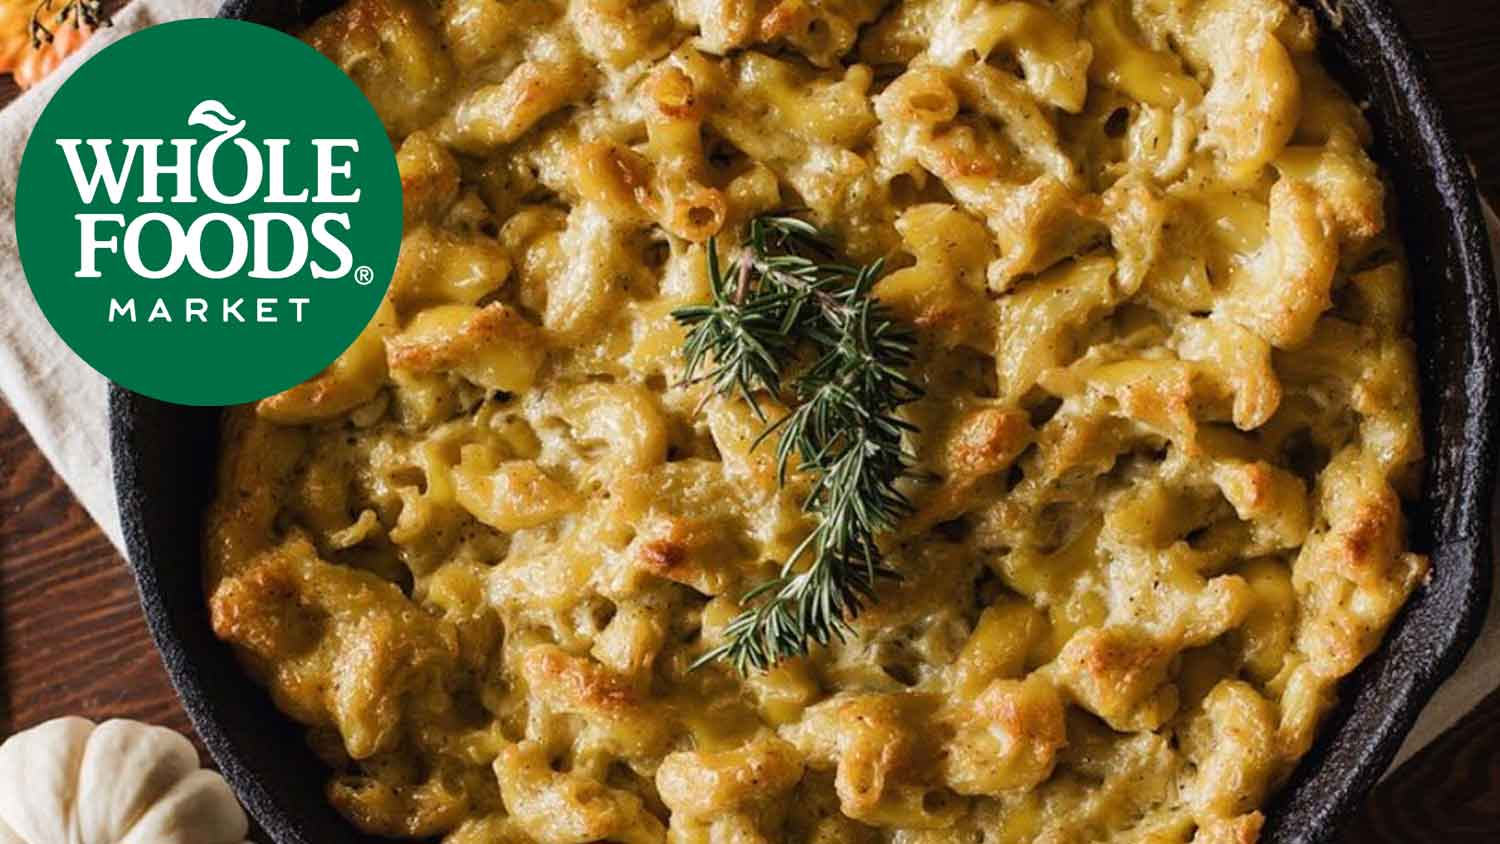 44 More Whole Foods Hot Bars Have Vegan Mac and Cheese Now